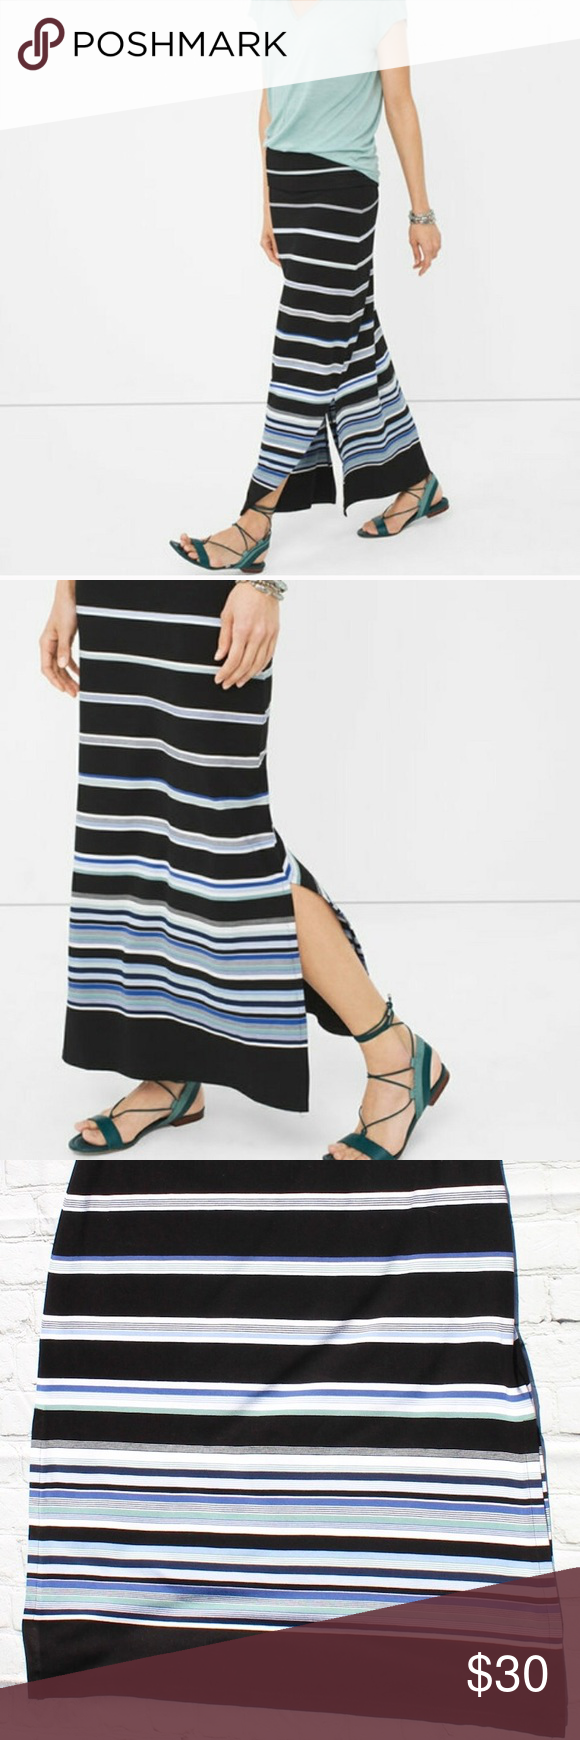 WHBM maxi 2 way dress/skirt striped Stripe skirt, Dress